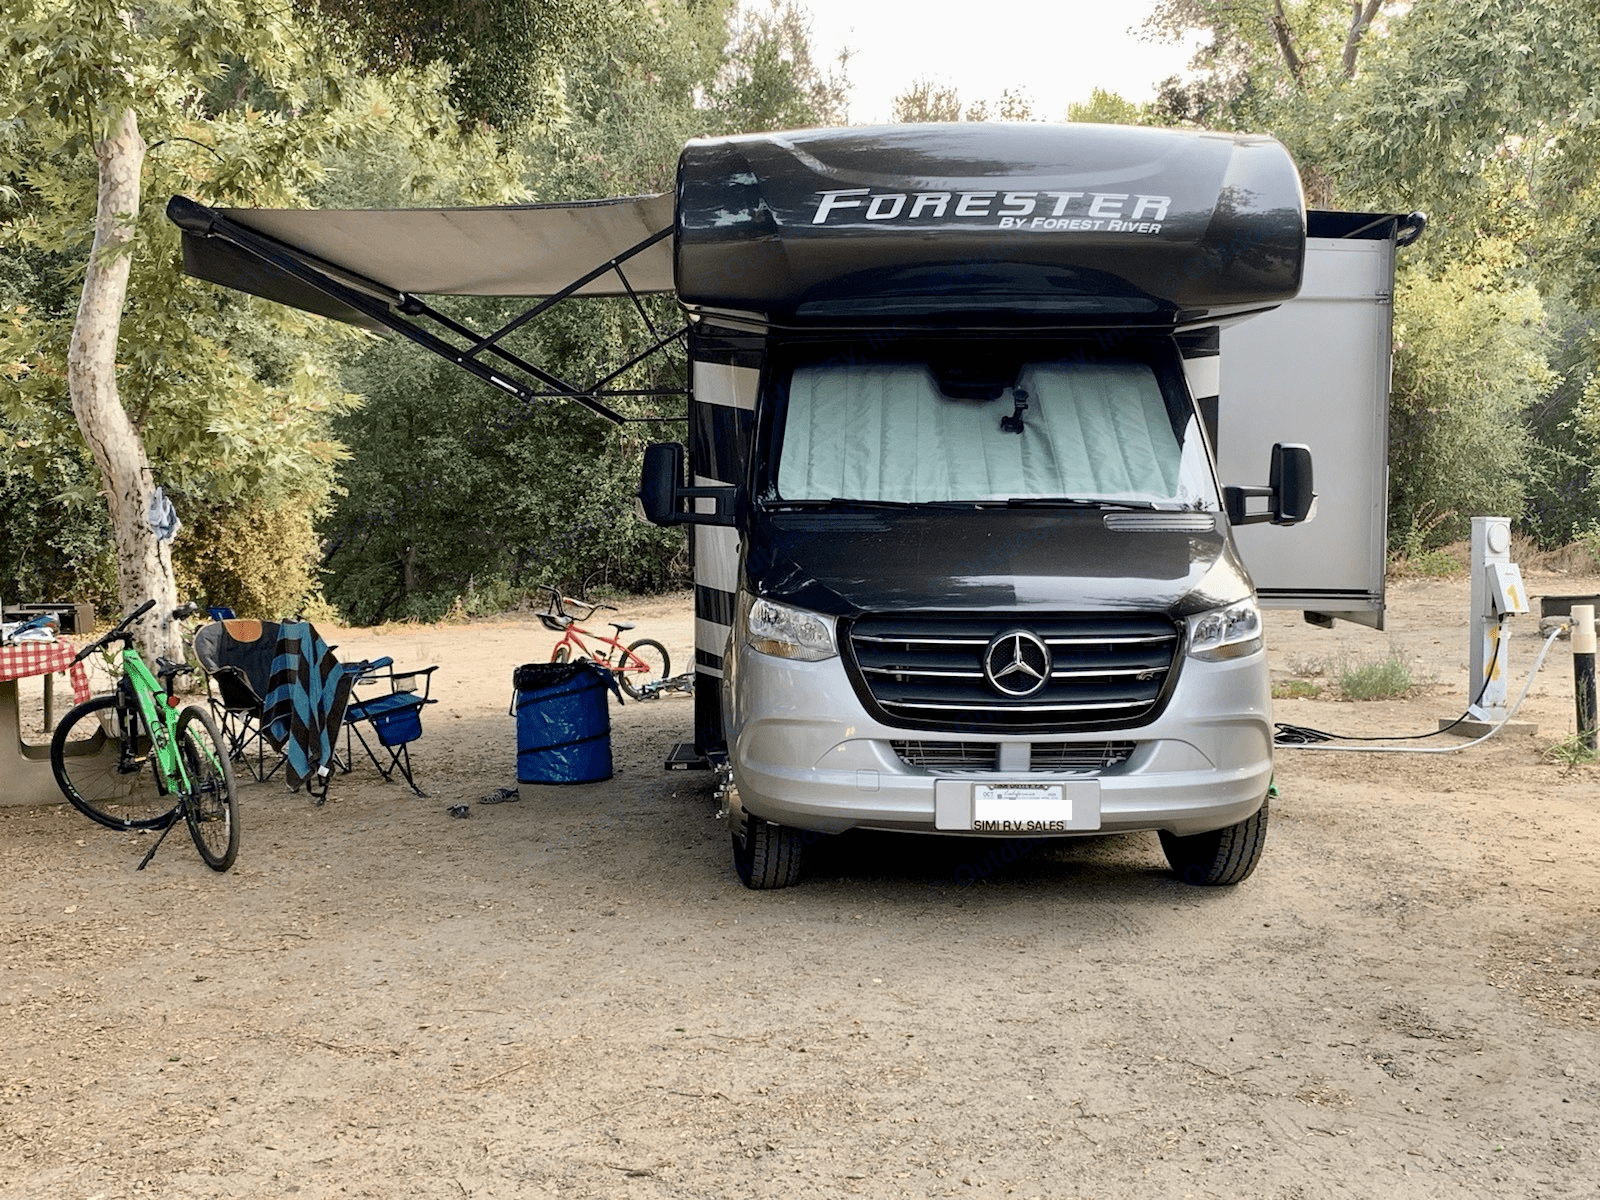 awning and slideout opened. Mercedes/Forest River Forester 2021